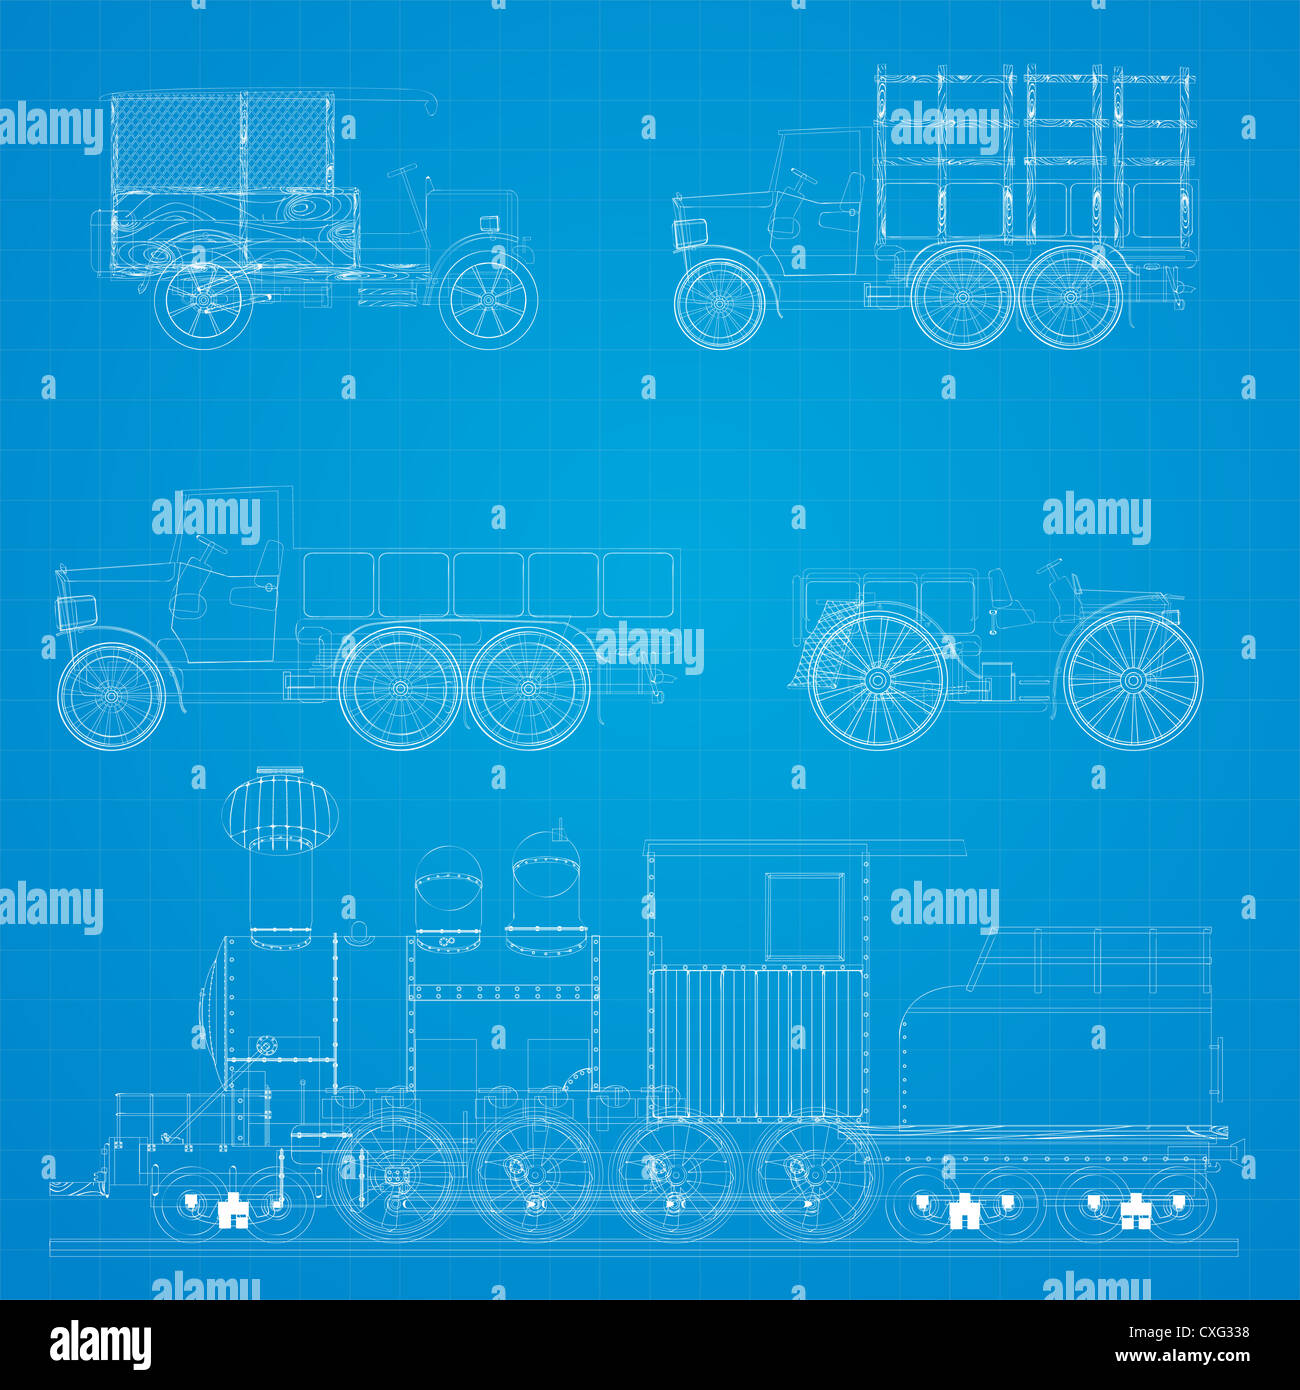 Old transportation vehicles and steam locomotive blueprint design old transportation vehicles and steam locomotive blueprint design malvernweather Image collections